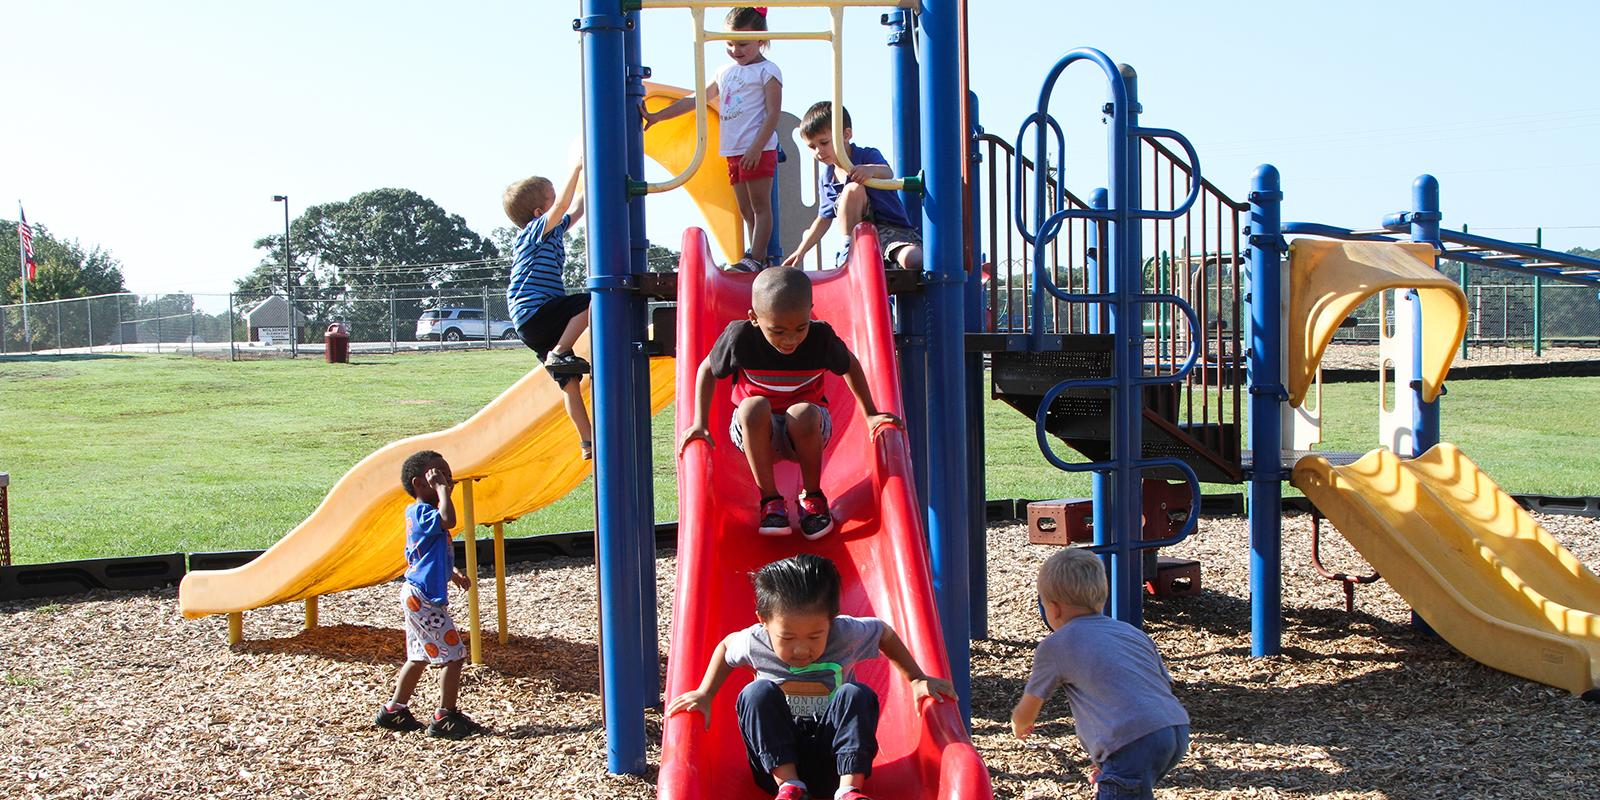 Students going down slide and playing at recess